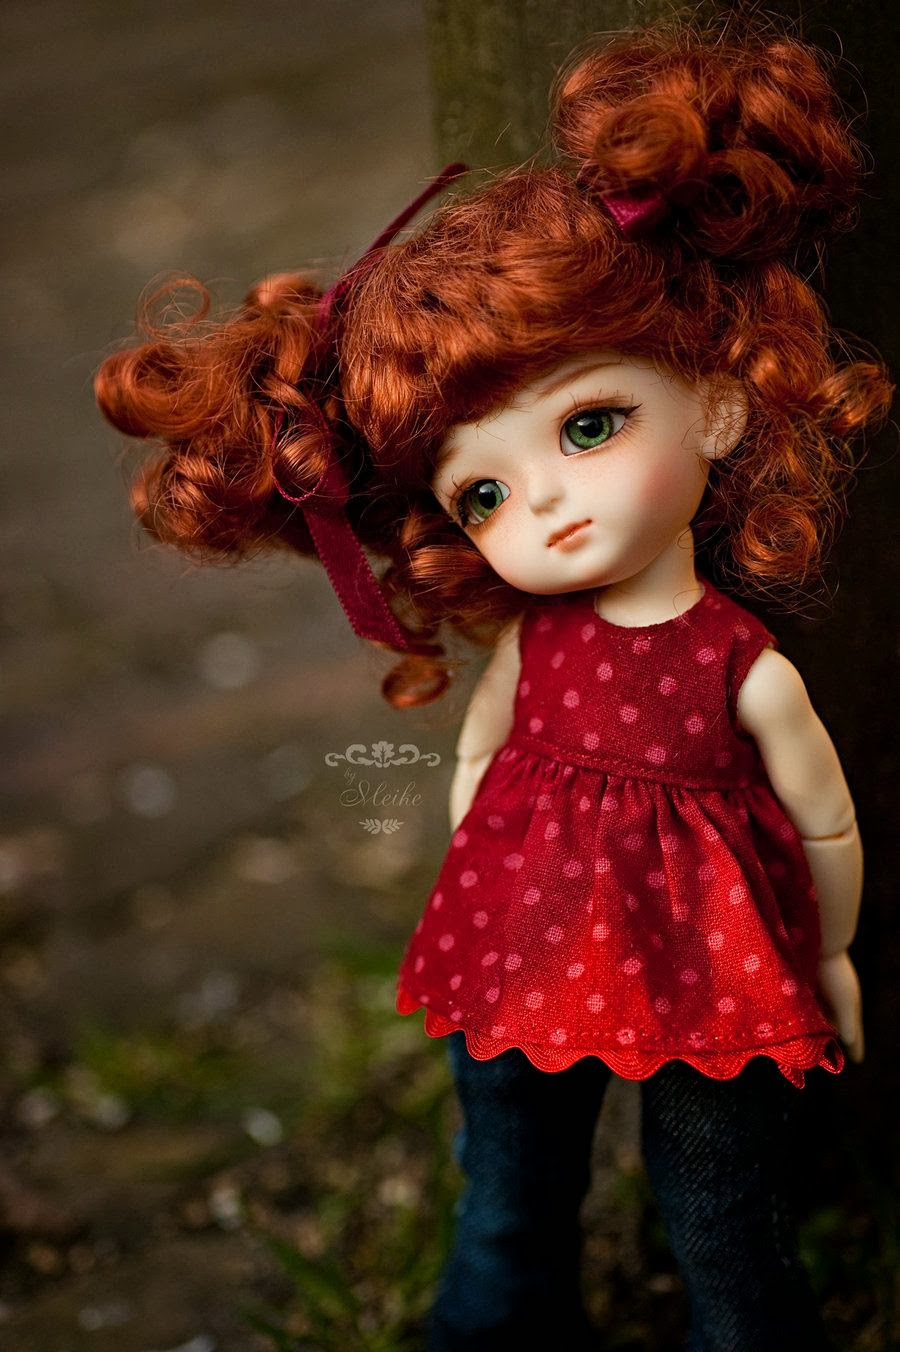 Cute Small Girl Wallpapers For Facebook Download Happy Doll Wallpaper Gallery